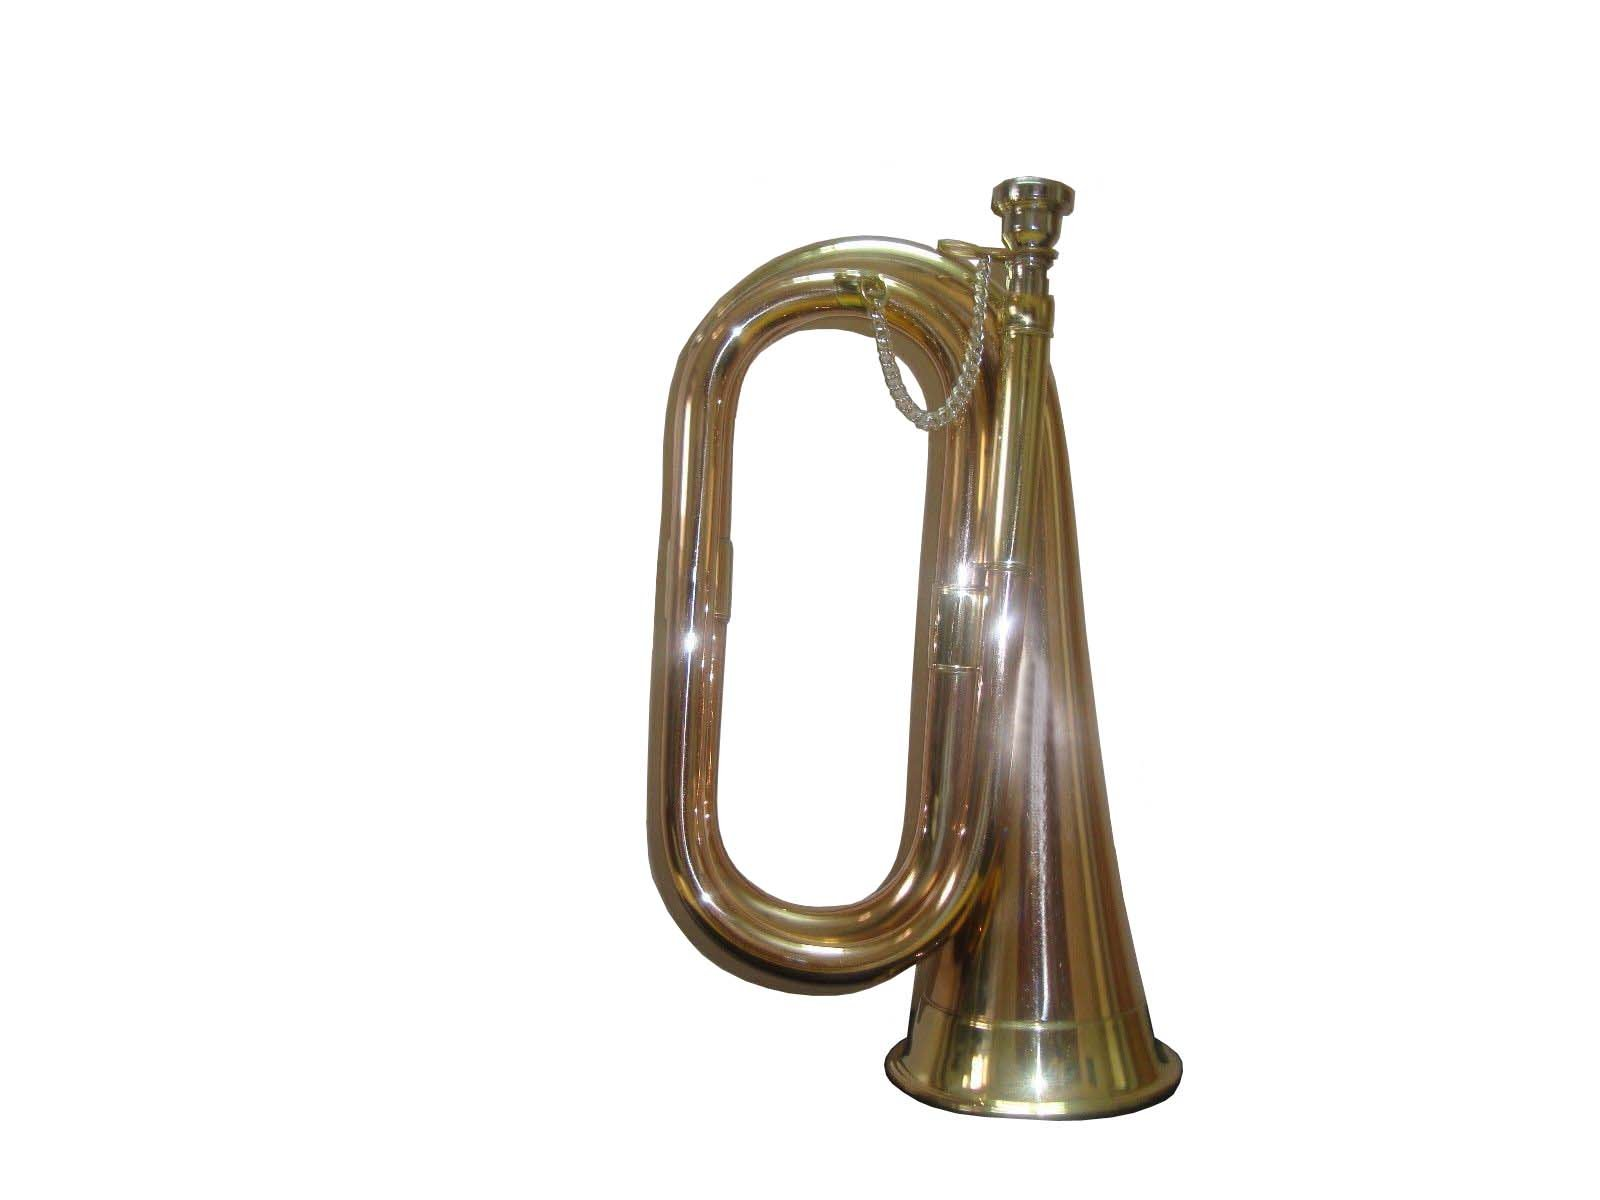 TOP GRADE QUALITY CAVALRY BUGLE CIVIL WAR WITH COPPER AND BRASS FINISH EXCELLENT MUSICAL INSTRUMENT shry013